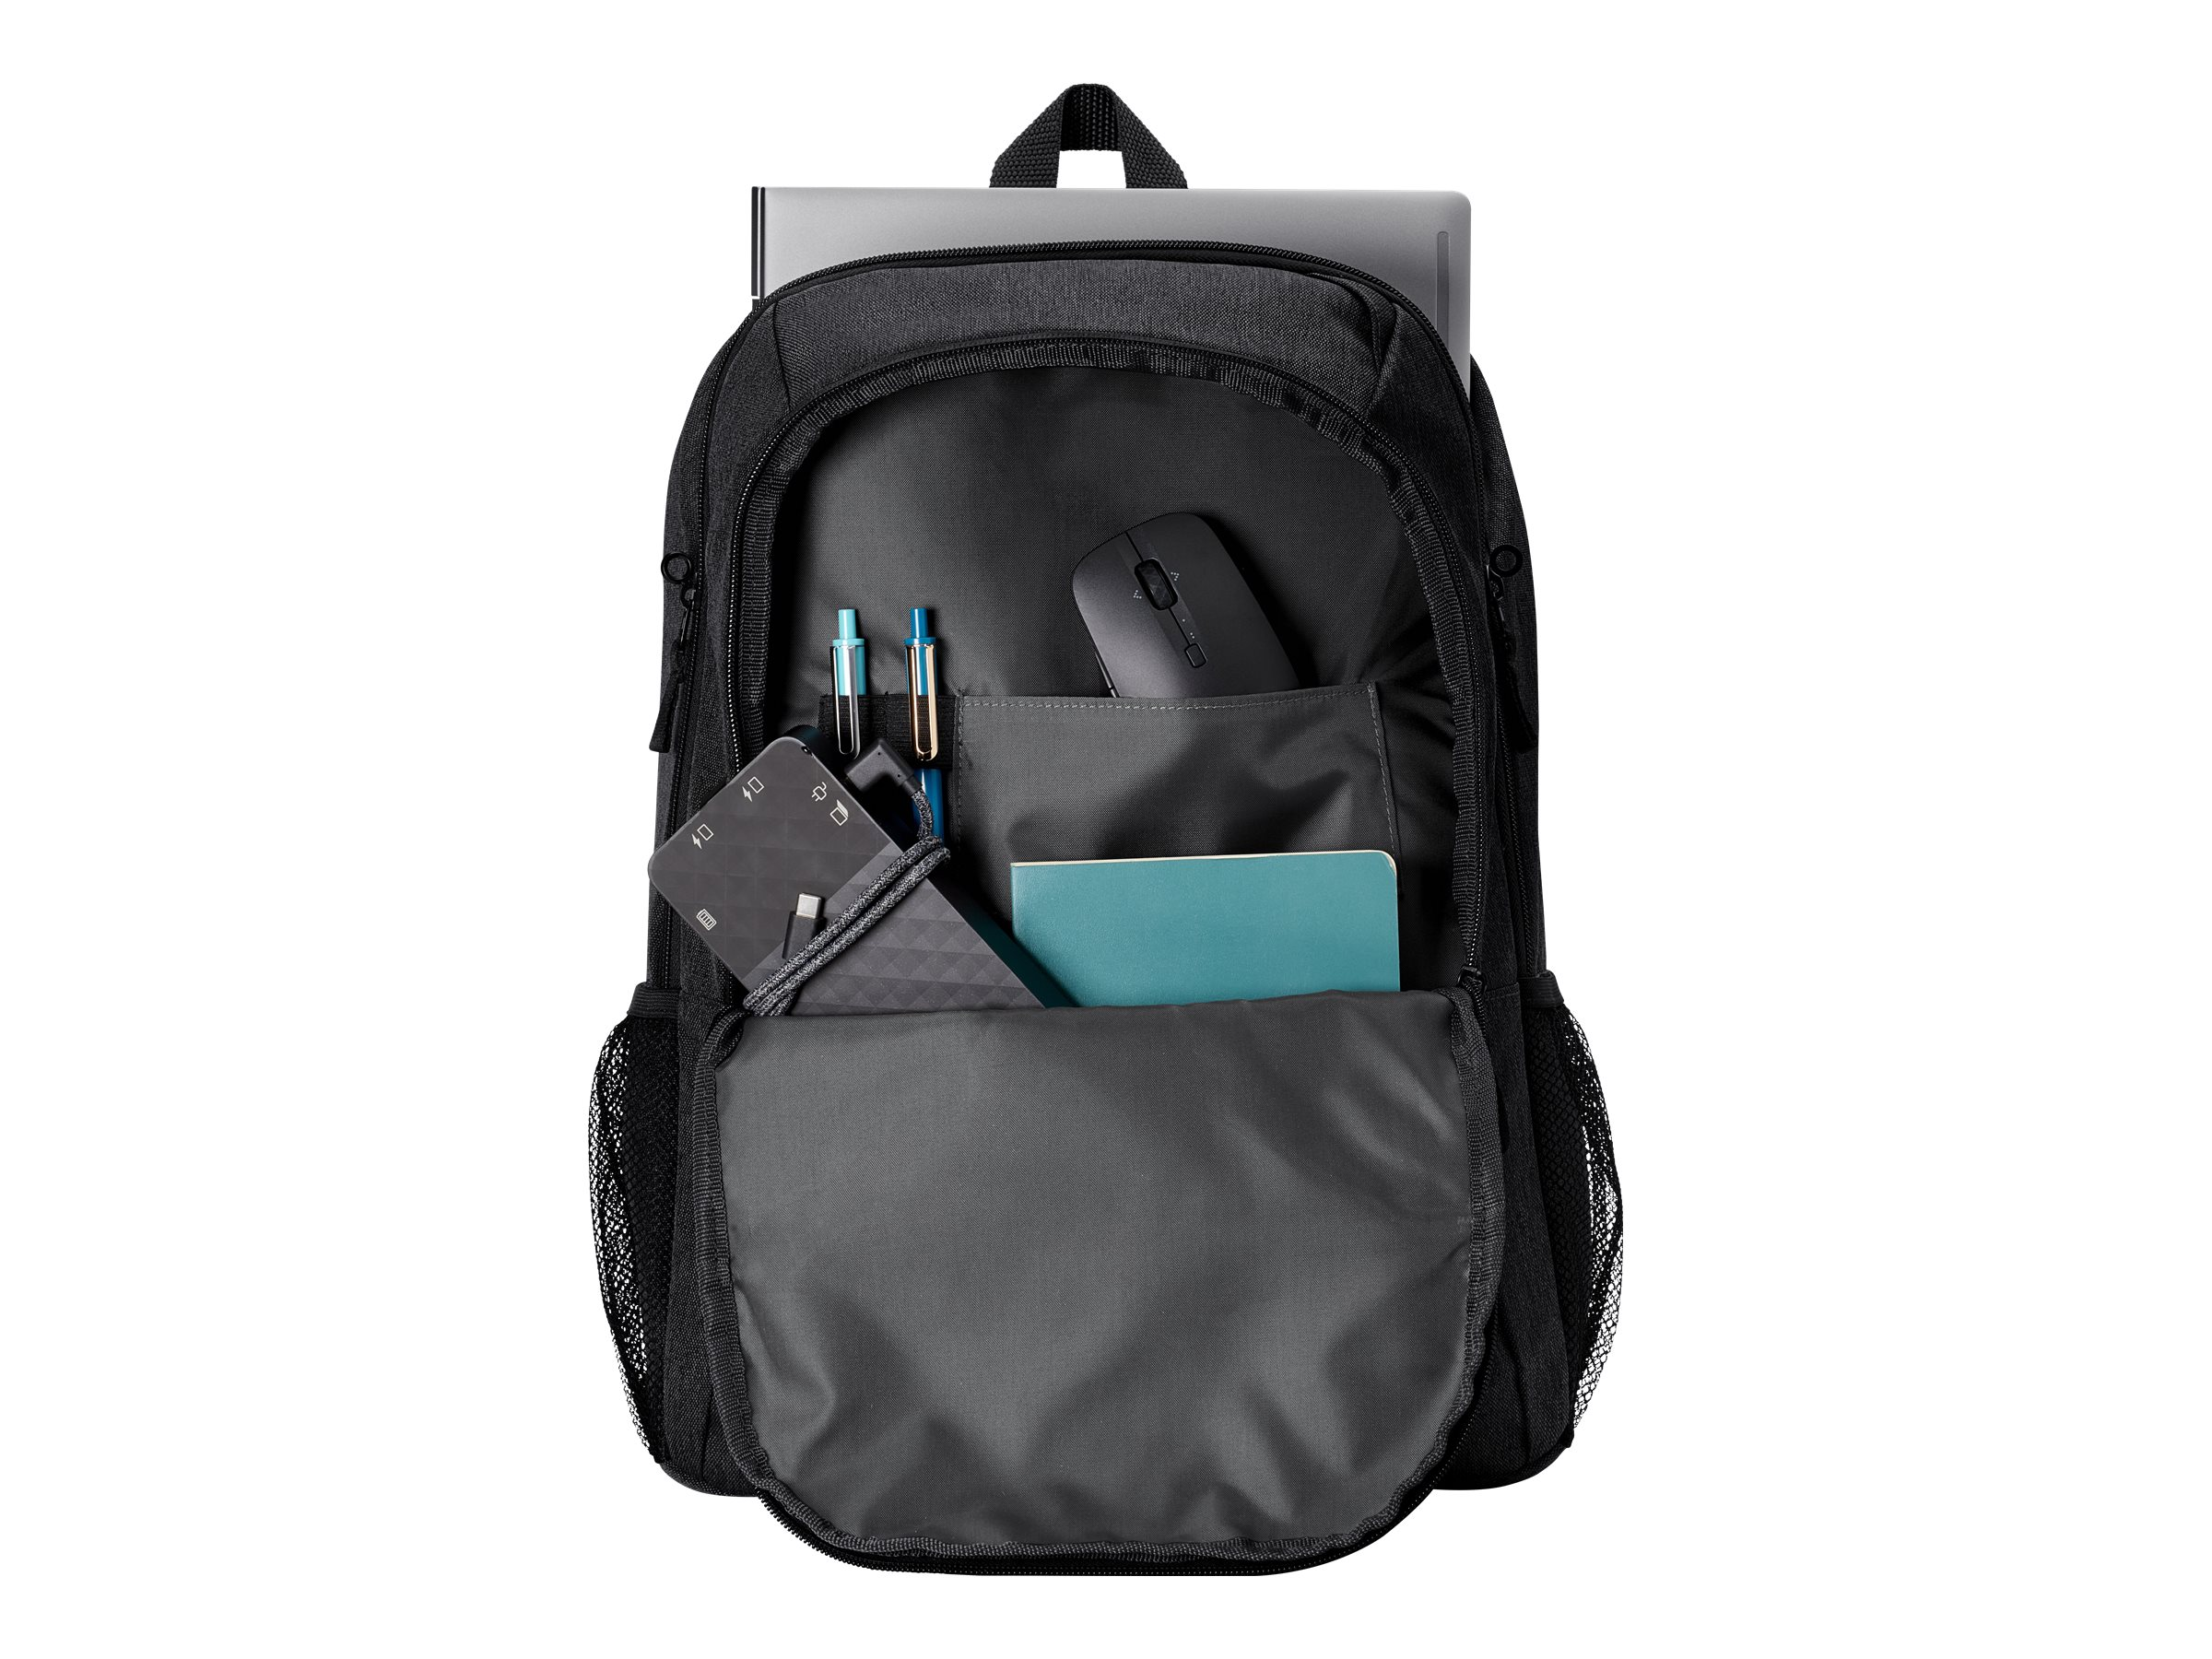 HP Prelude Pro Recycled Backpack notebook carrying backpack